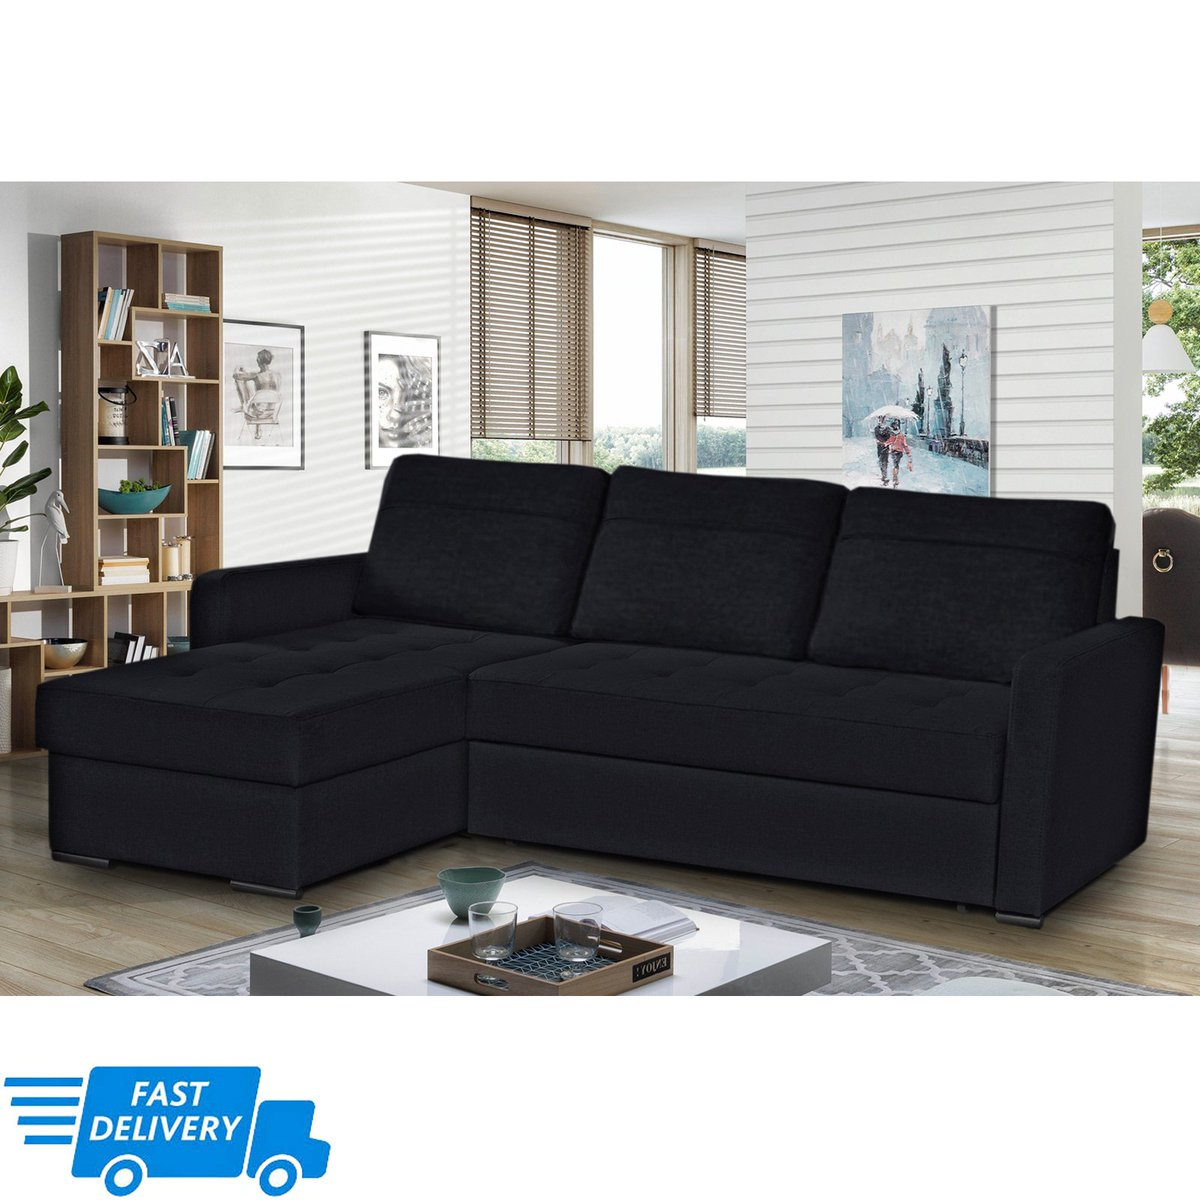 ... Delivery 2/products/barty Modern Corner Sofa  Bed With Storage And Pull Out Bed Black Faux Leather 220x160cm U2026